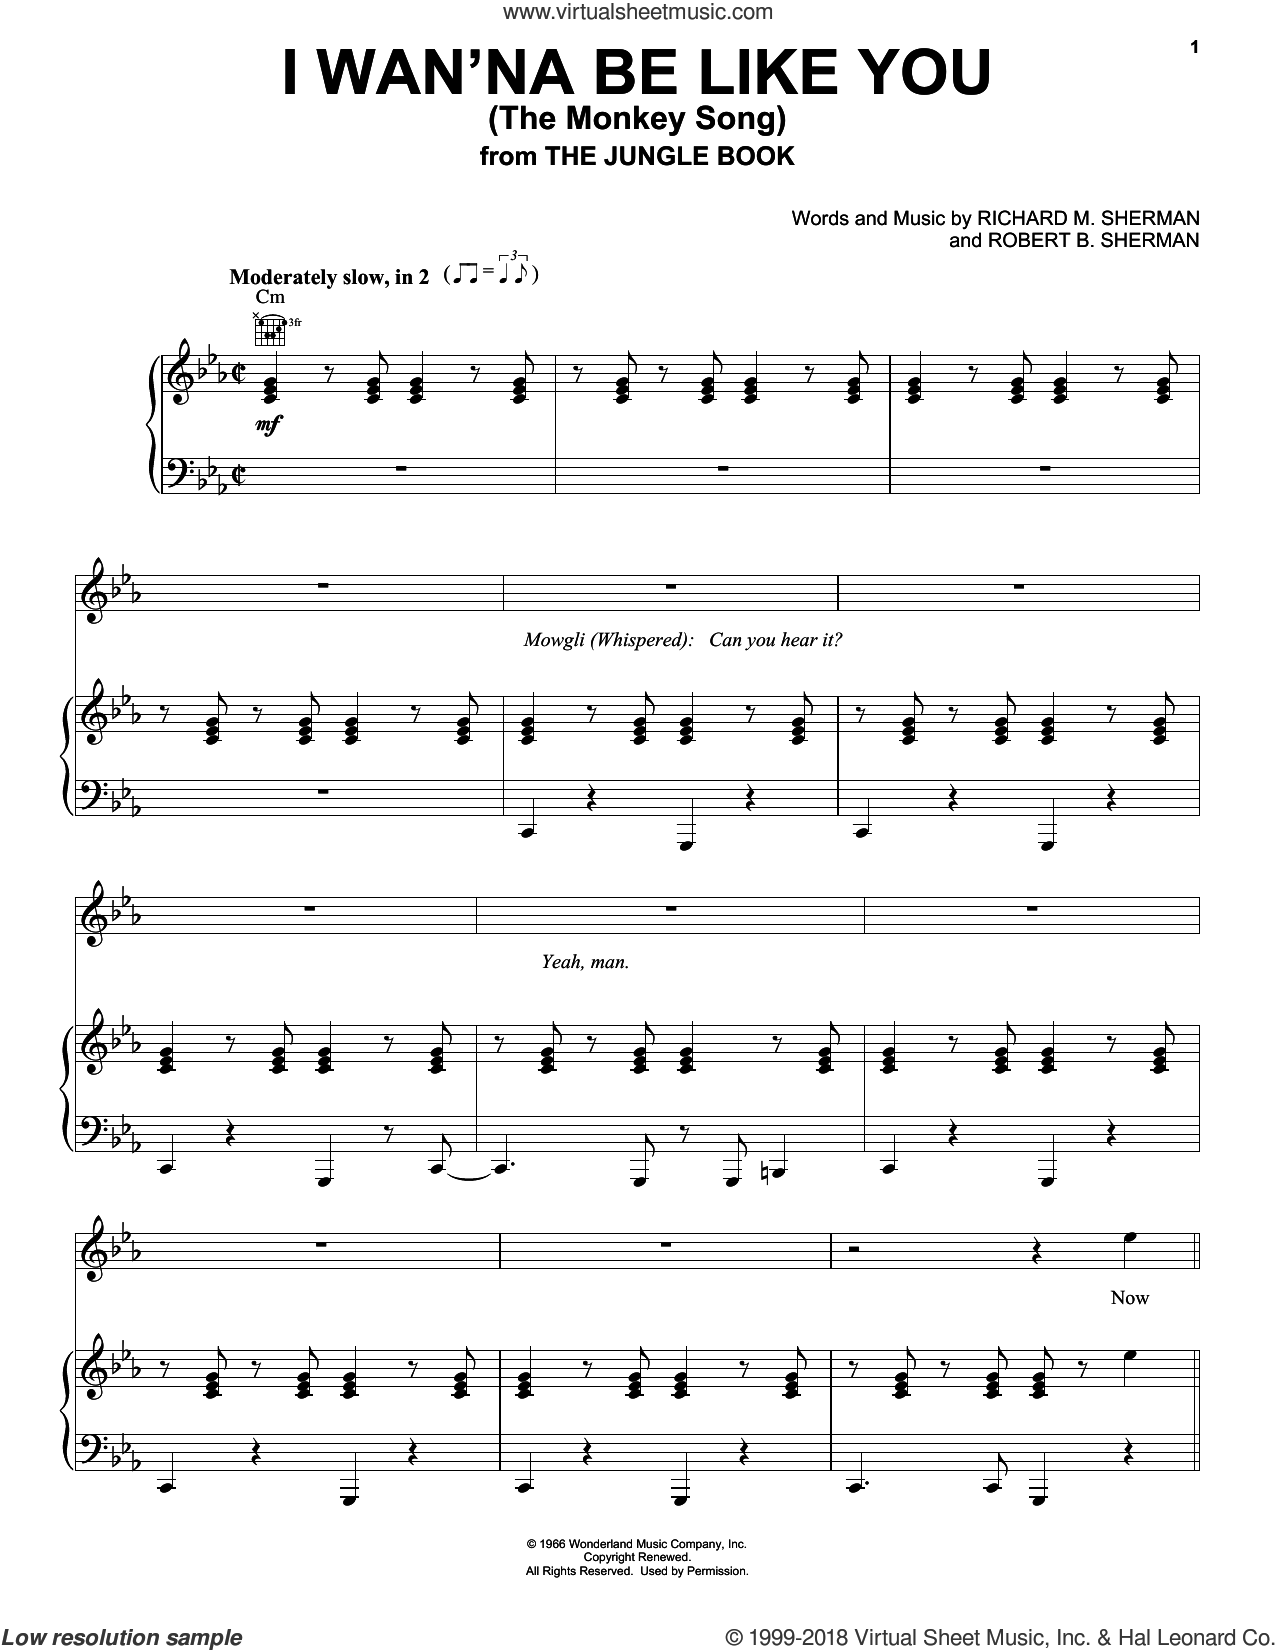 I Wan'na Be Like You (The Monkey Song) sheet music for voice, piano or guitar by Sherman Brothers, Richard M. Sherman and Robert B. Sherman. Score Image Preview.